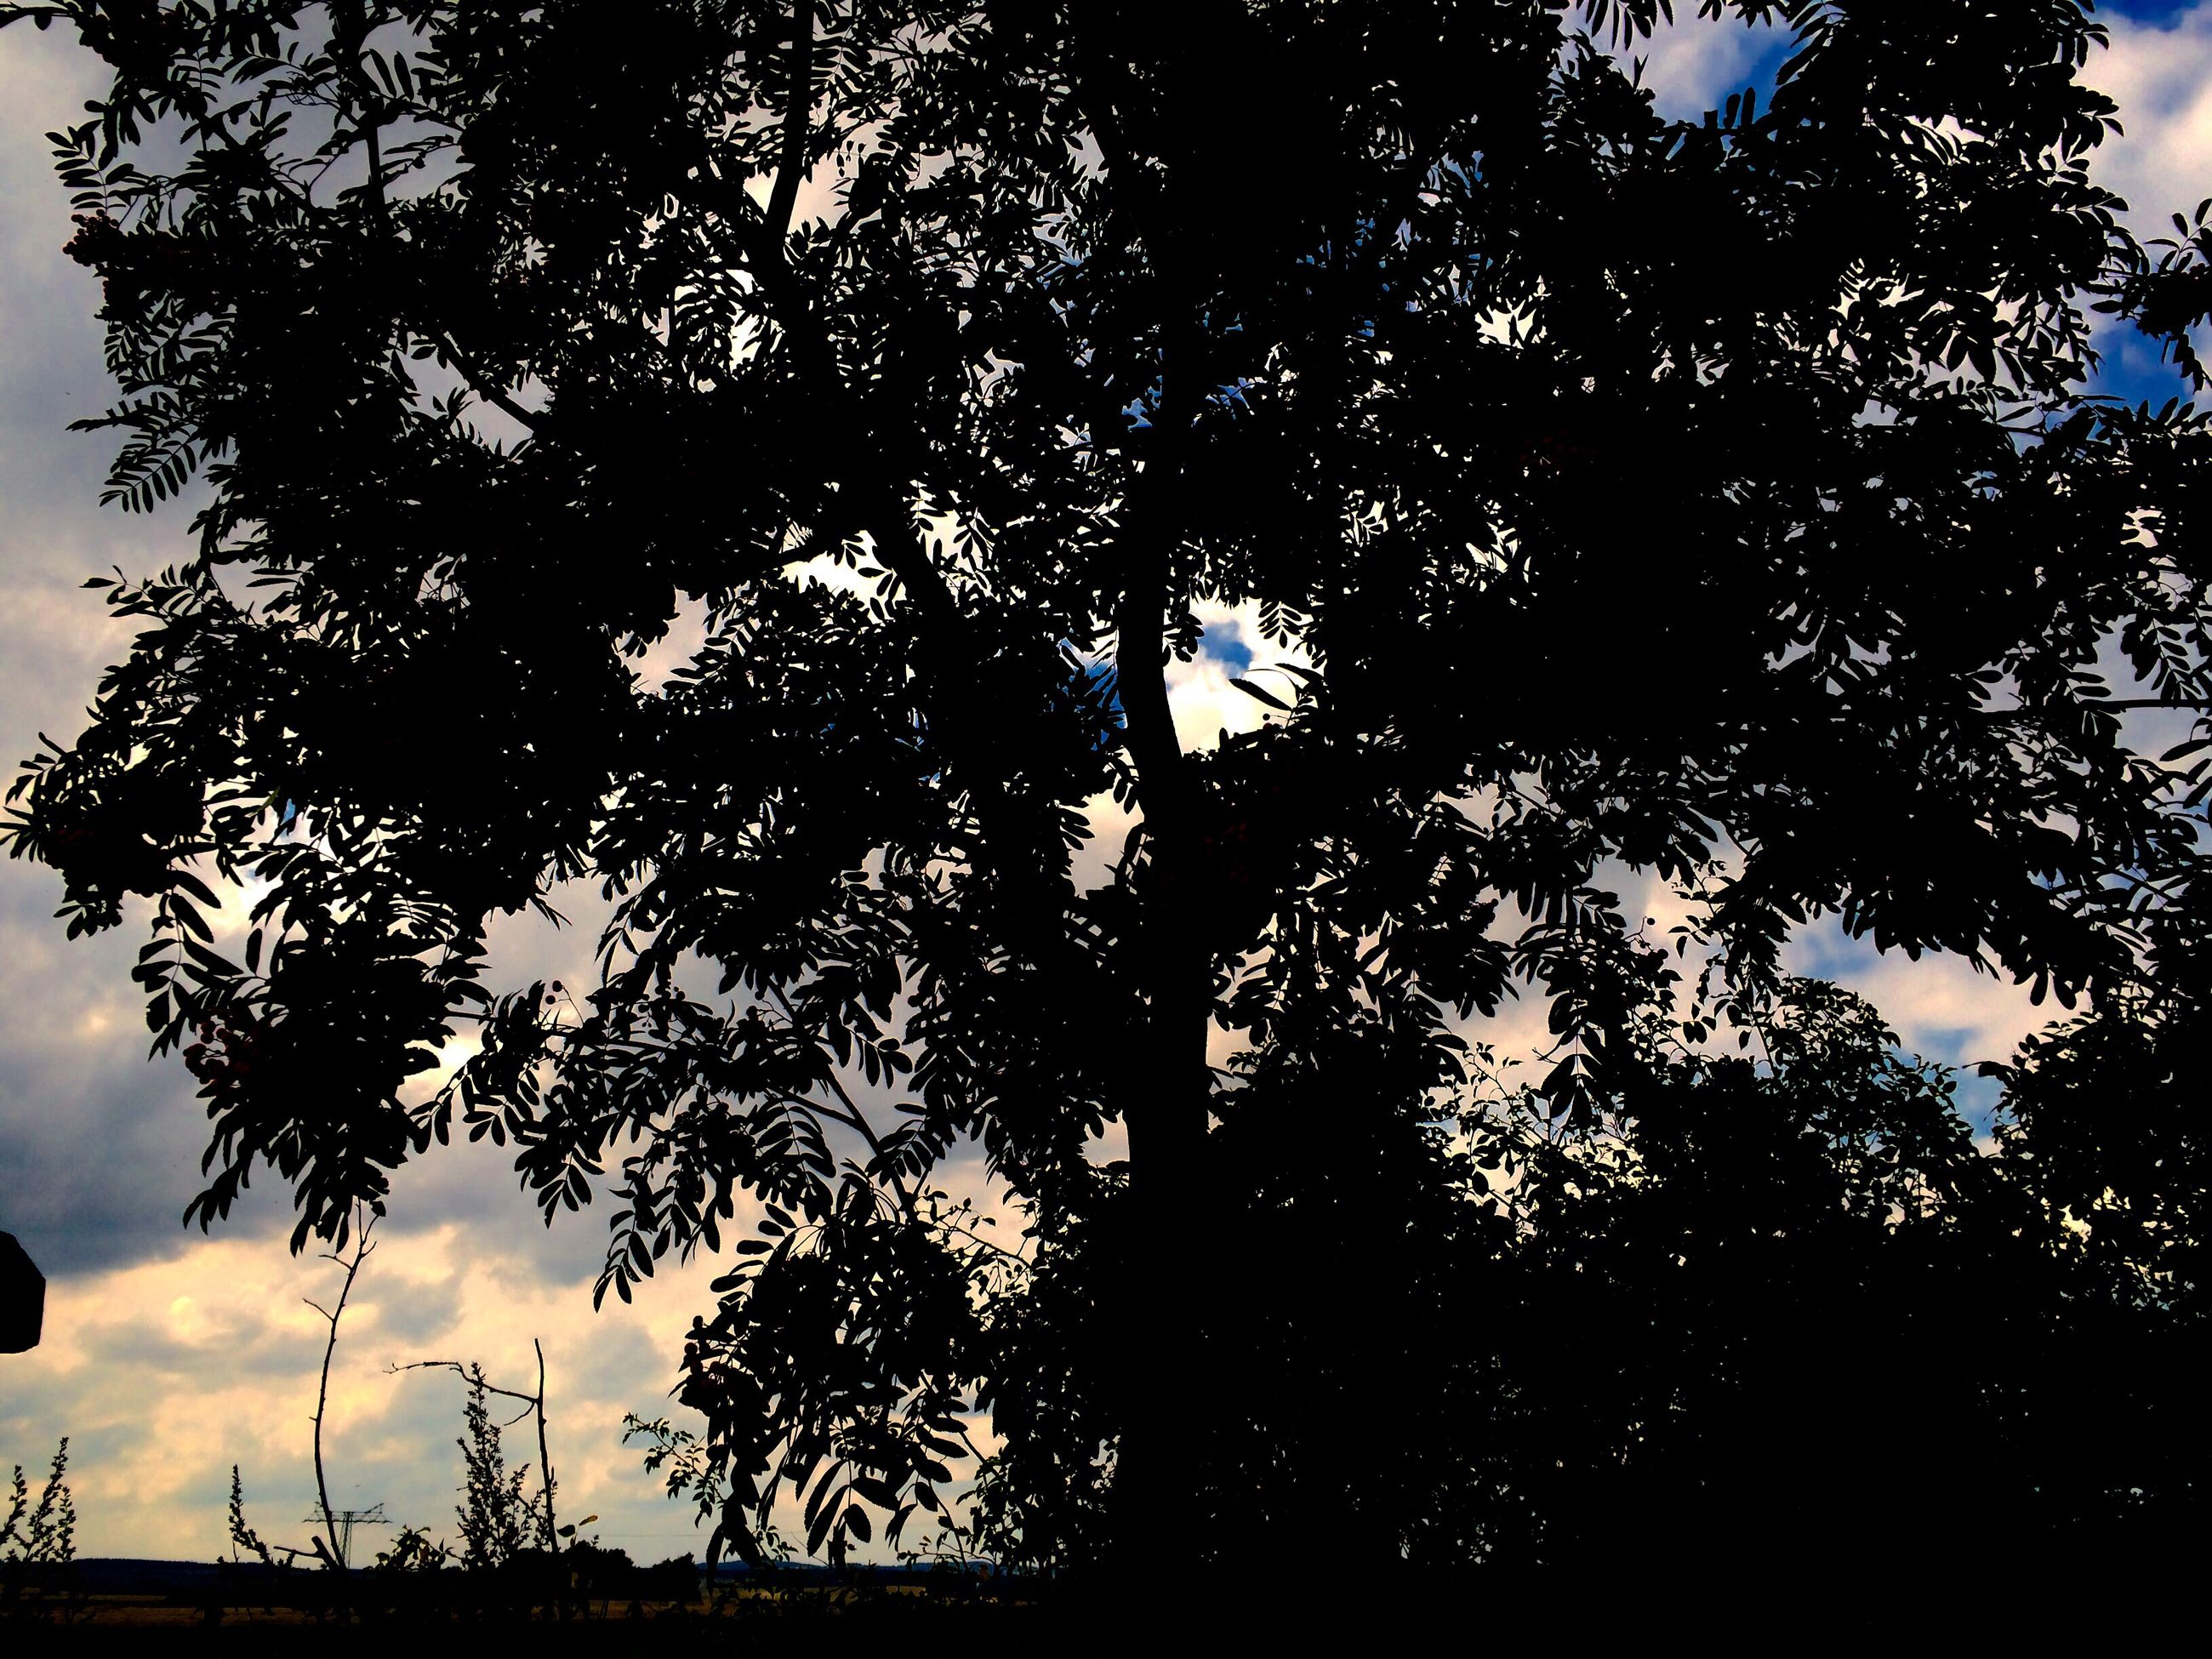 tree, silhouette, growth, low angle view, tranquility, nature, branch, sky, tranquil scene, scenics, beauty in nature, day, outdoors, outline, solitude, remote, dark, non-urban scene, no people, green, majestic